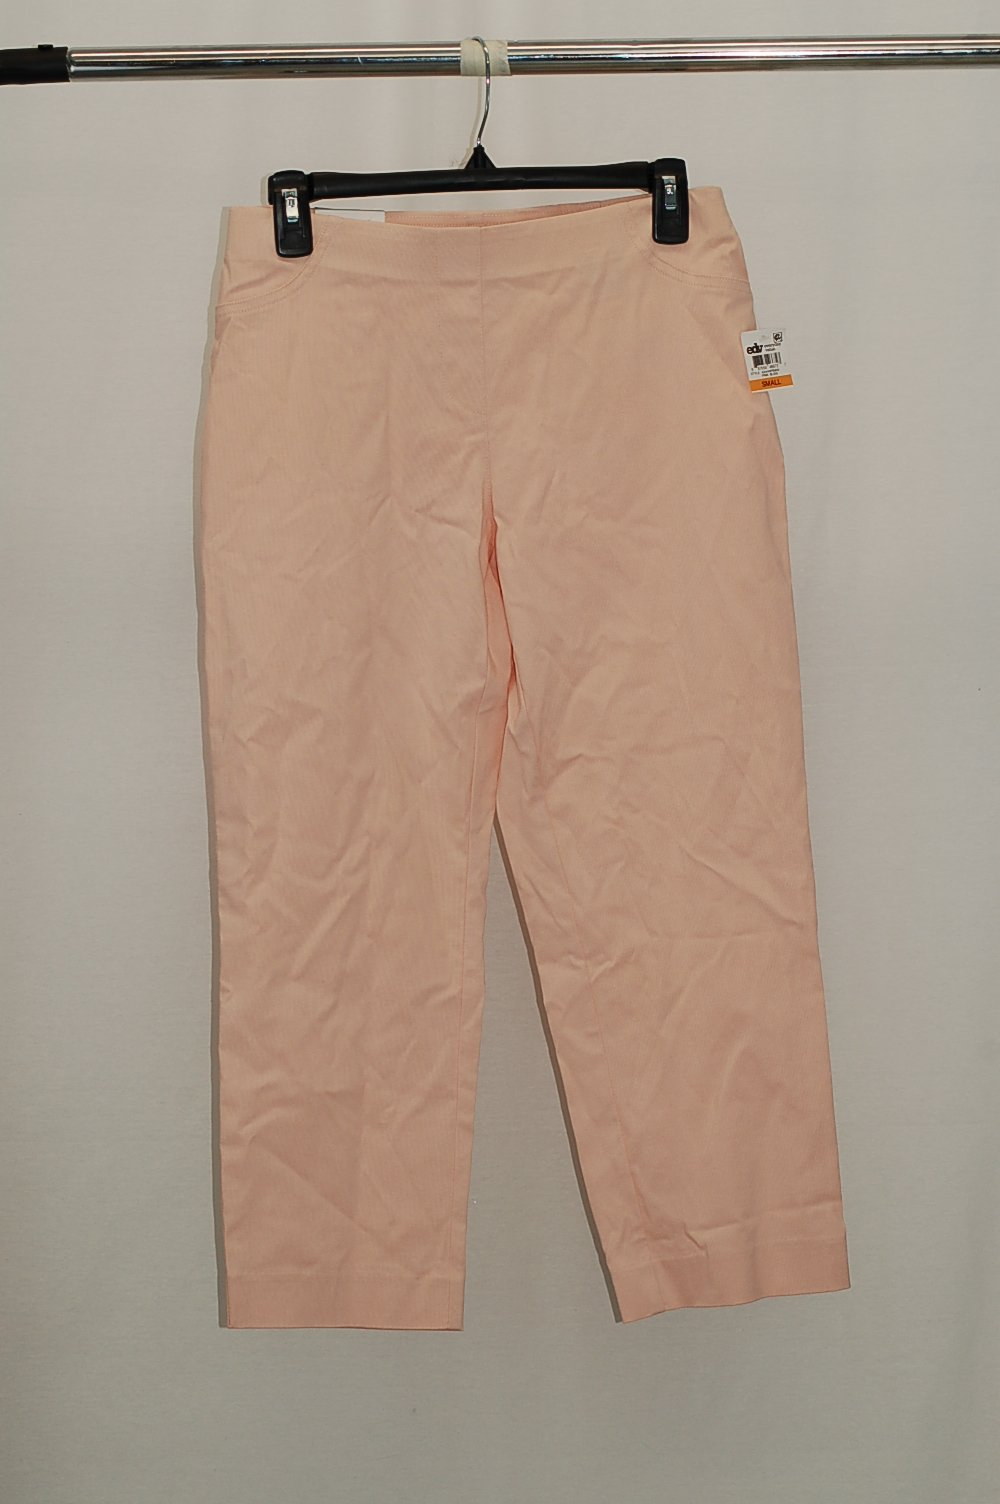 a9b91c176478dd Style Co Pull-On Capri Pants Pink Bliss S | eBay